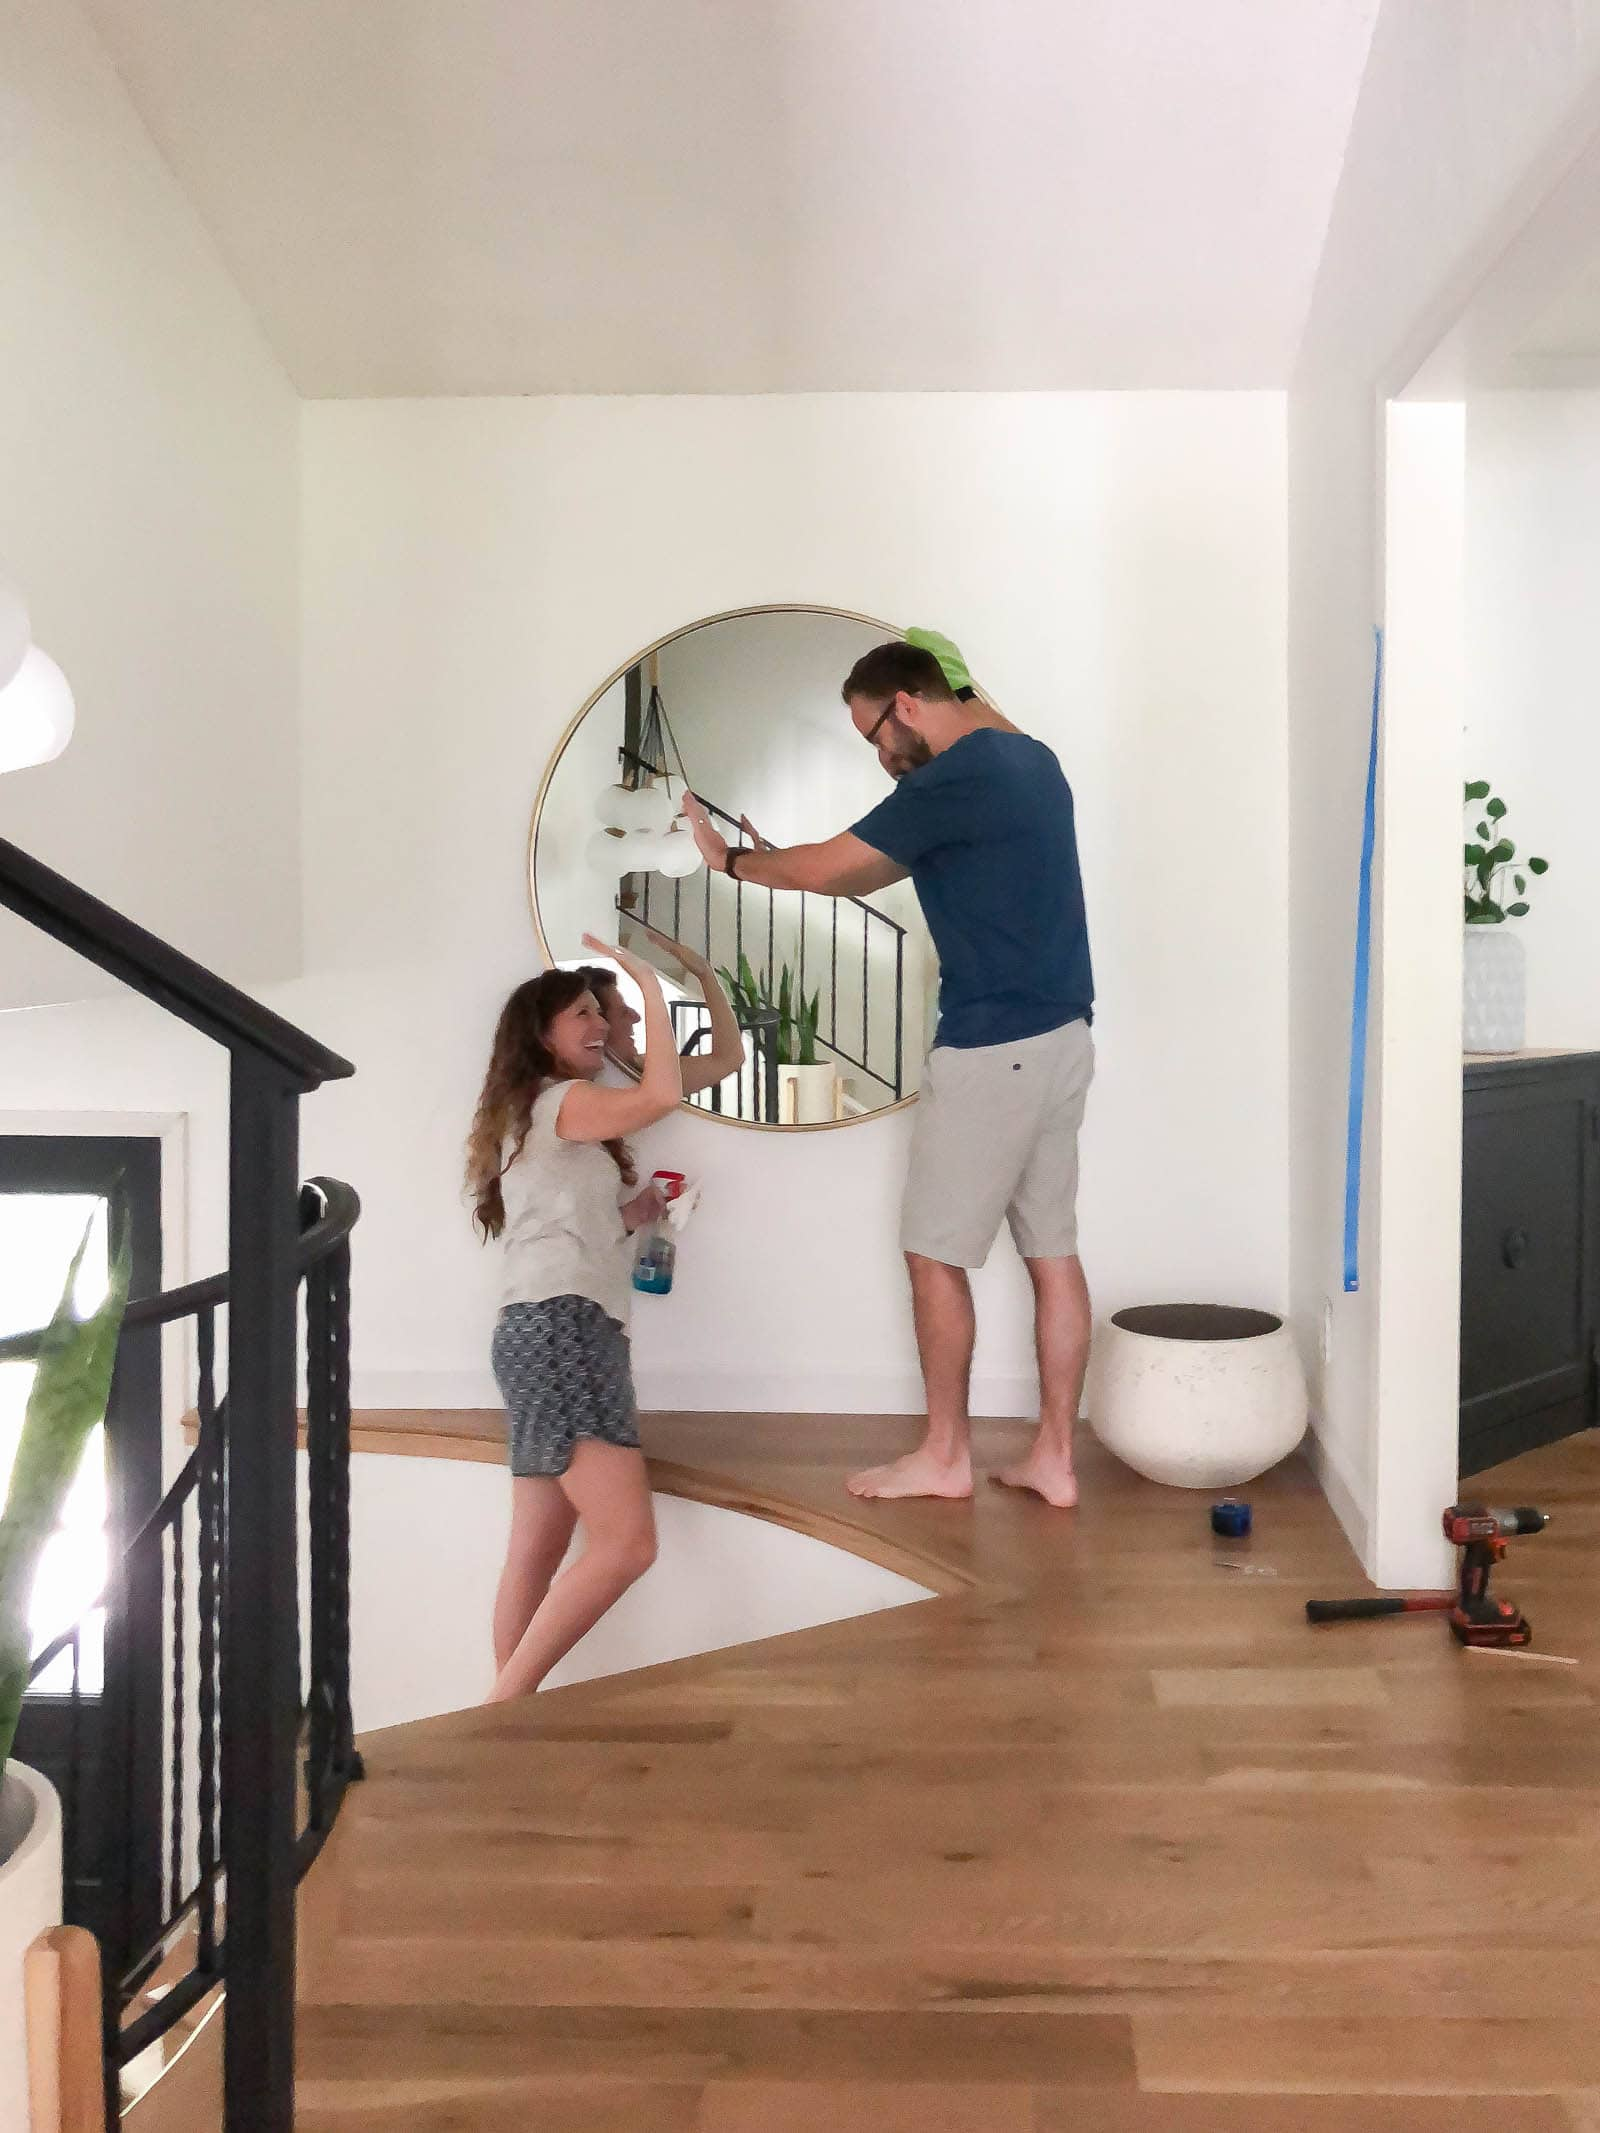 working with your spouse on DIY